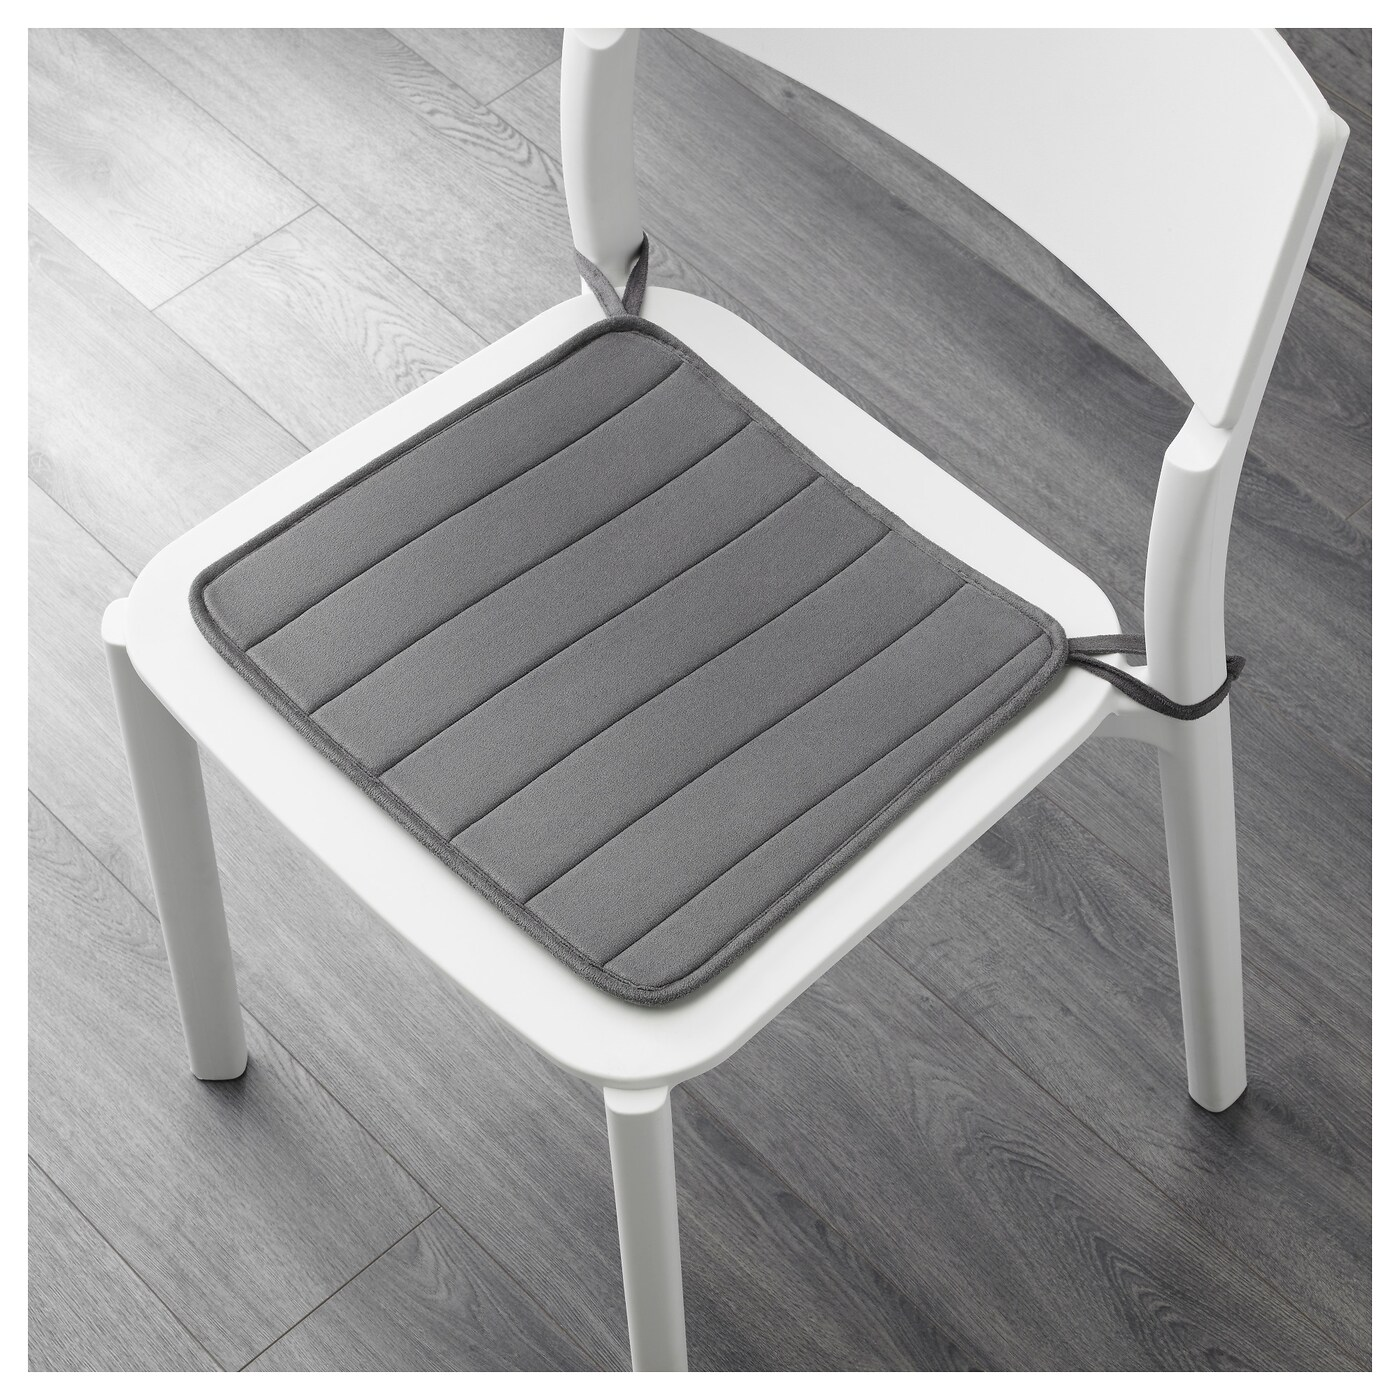 Carreau De Chaise VintergÄck Carreau De Chaise Gris 32 5 34 5x31x0 7 Cm Ikea